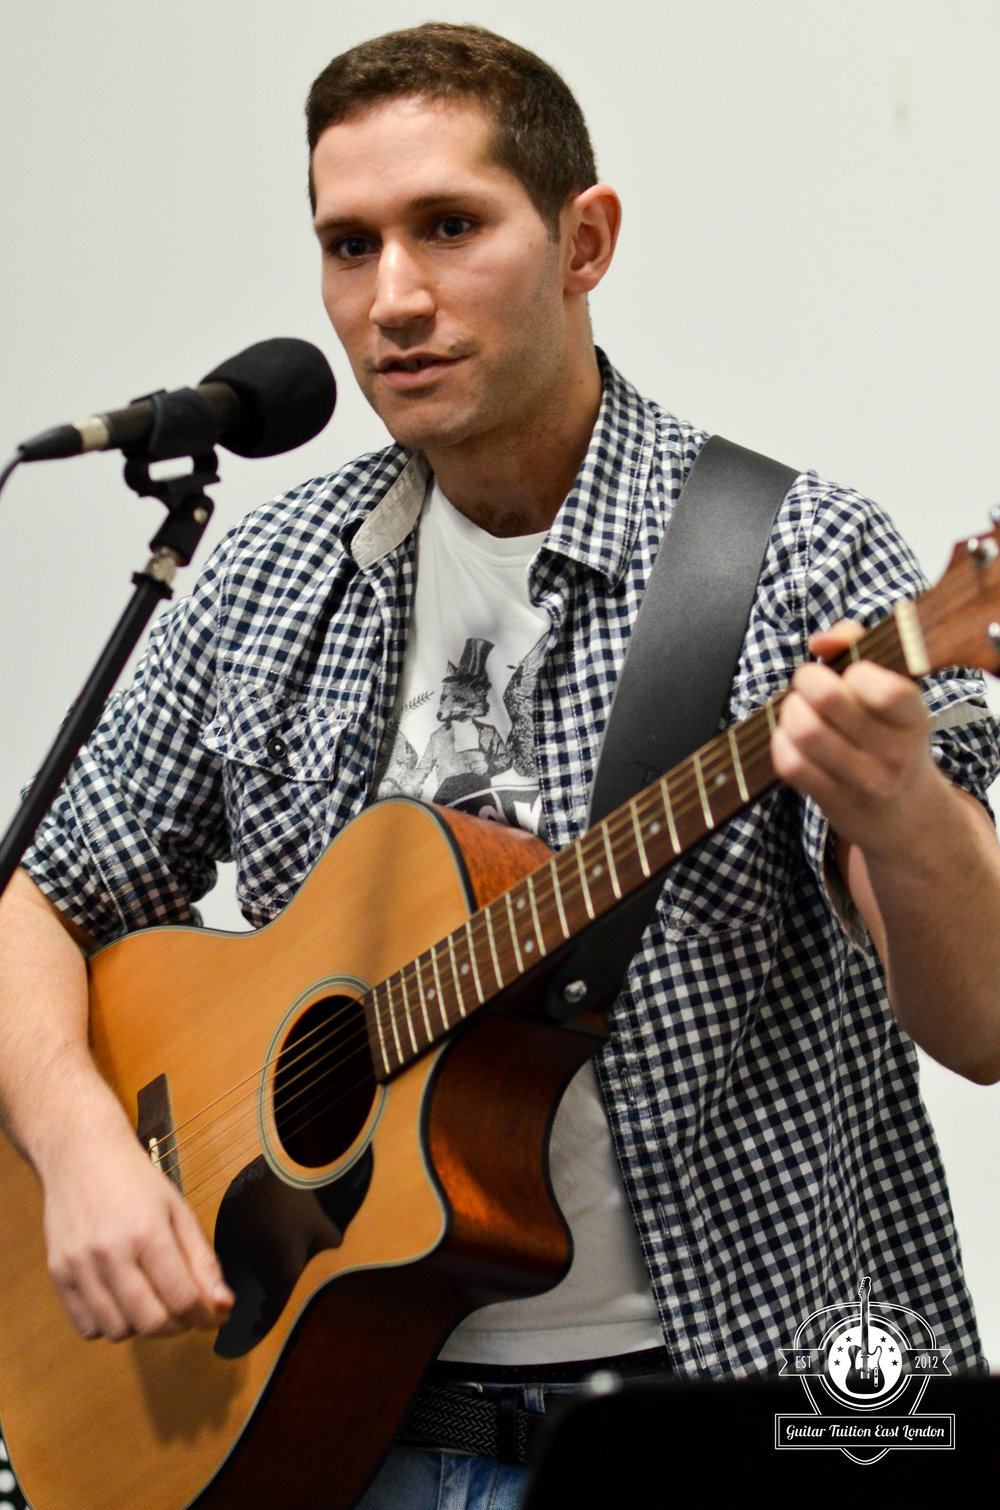 Jon, performing a song for us in this photo. He started as a beginner at Guitar Tuition East London and has developed so much confidence since then and achieved his dream of playing at Open Mics.